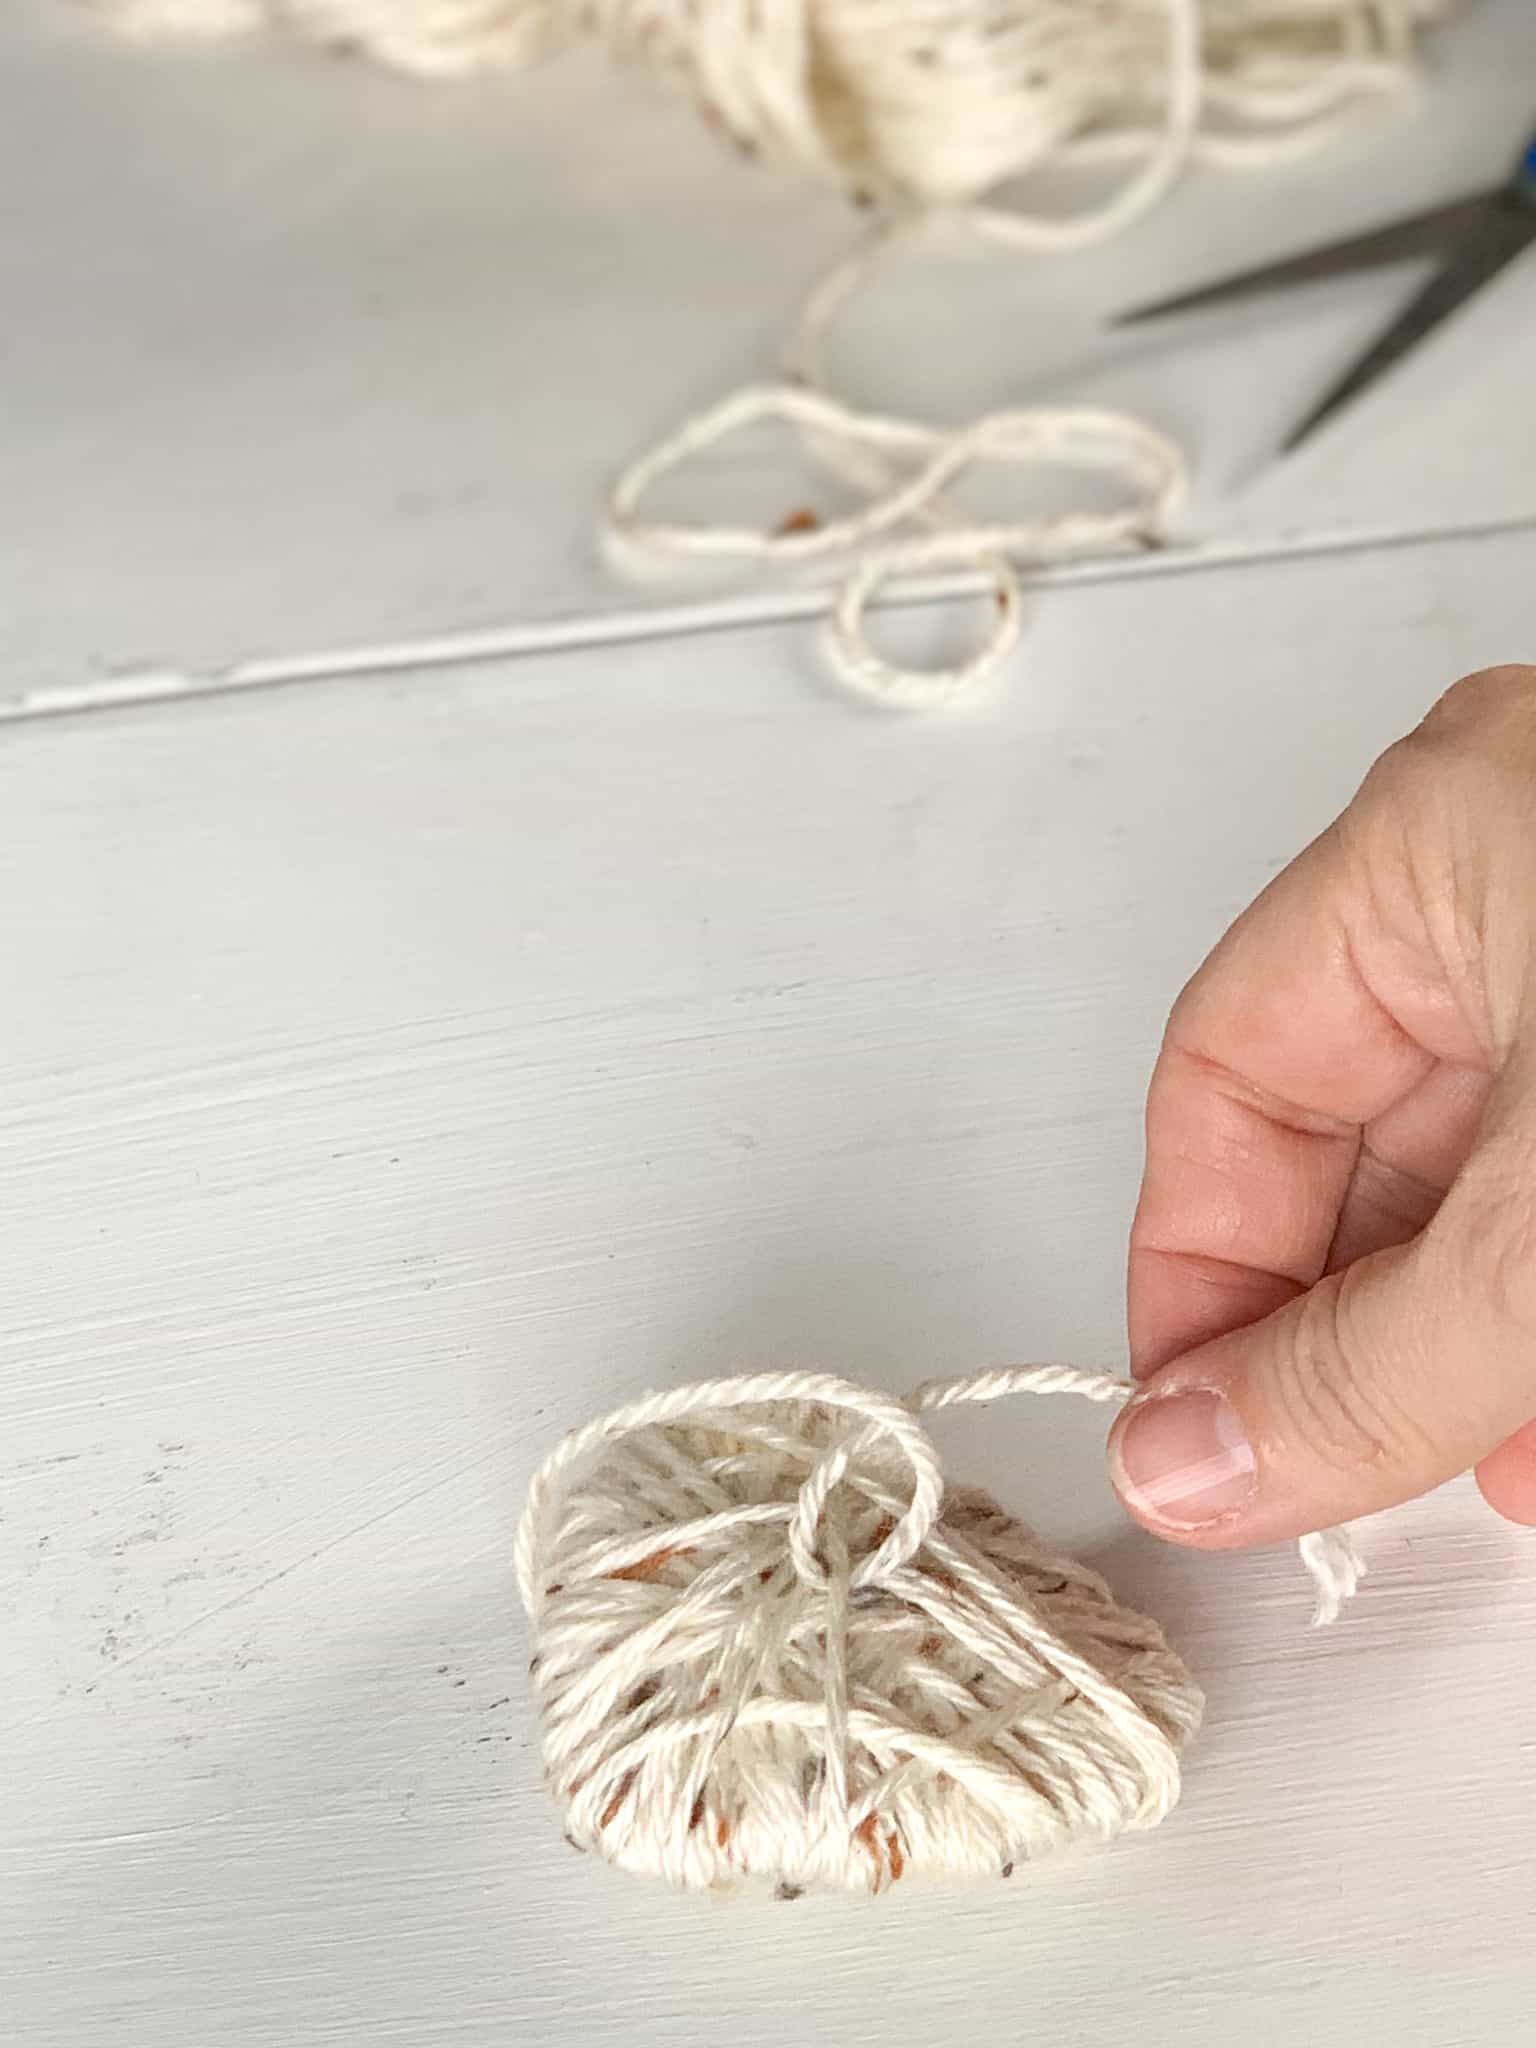 Cut end of yarn and secure by making a knot.